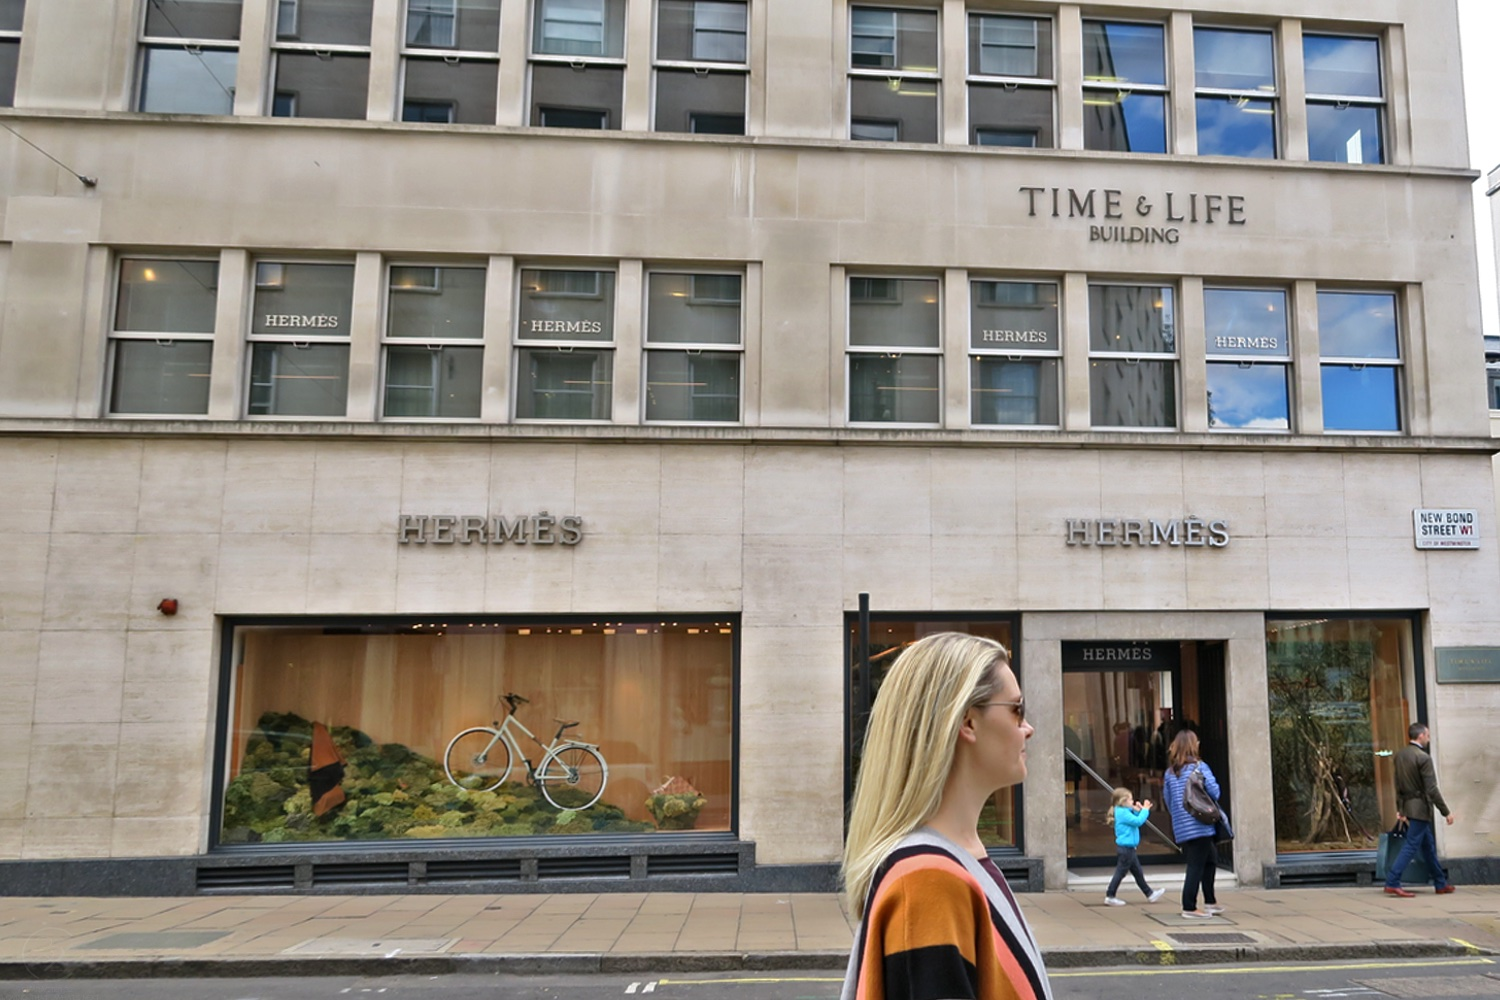 hermes-store-new-bond-street-character-32-loving-that-whats-next-fashion-lifestyle-c32